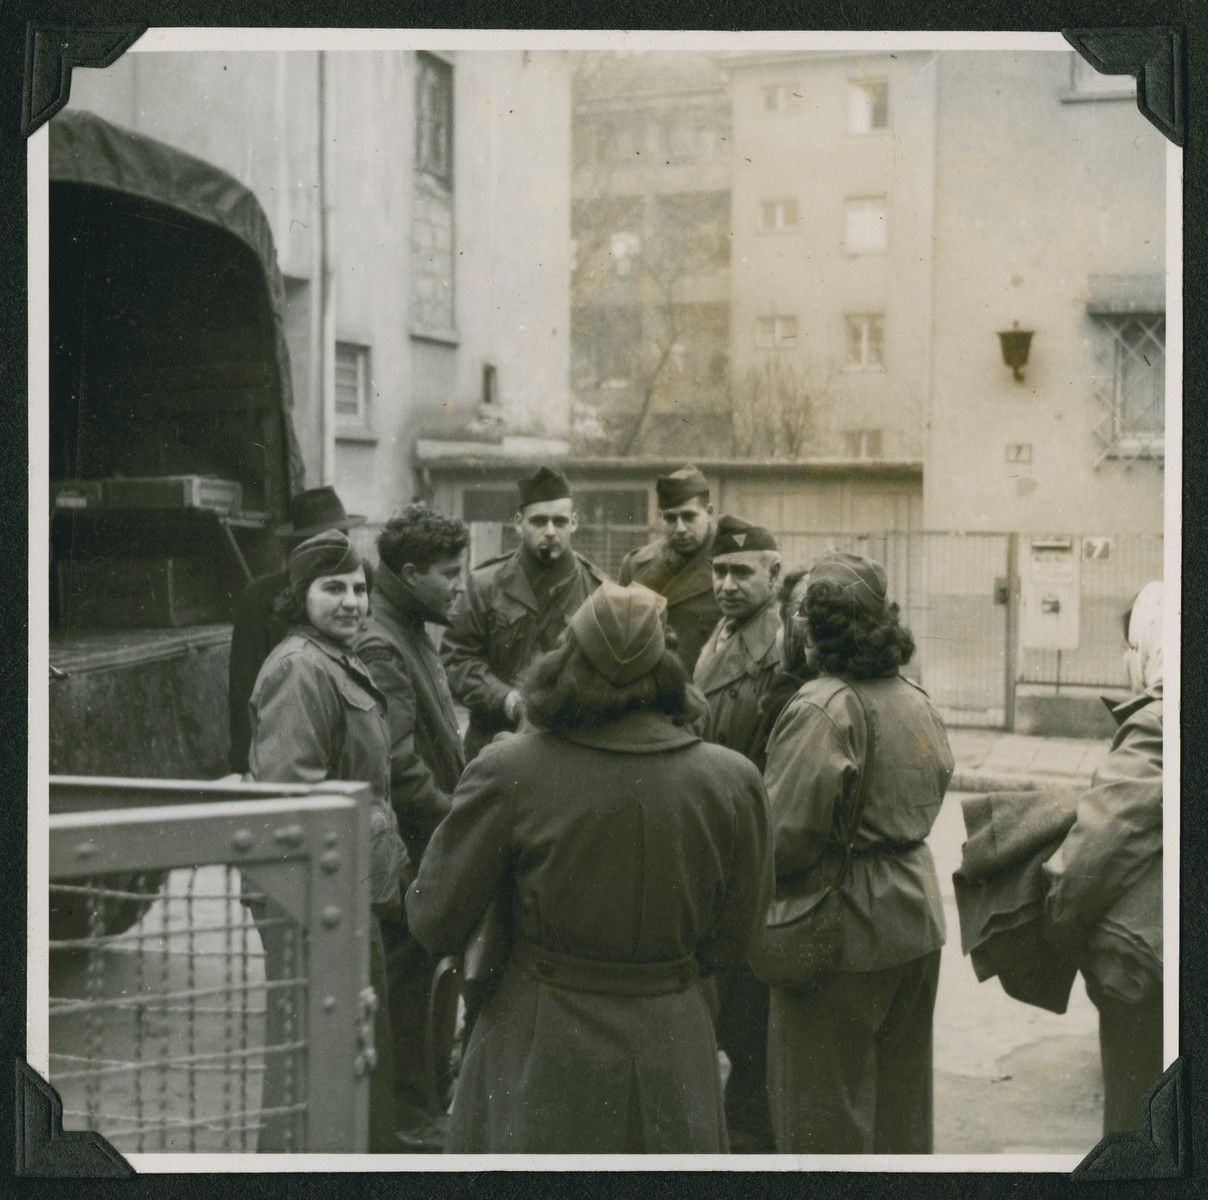 Members of the Frankfurt Jewish GI Council prepare to load supplies onto a truck to take to needy displaced persons in Babenhausen.  Maurice Levitt is standing in the center on the left facing the camera.  Yehuda Lev is second from the left.